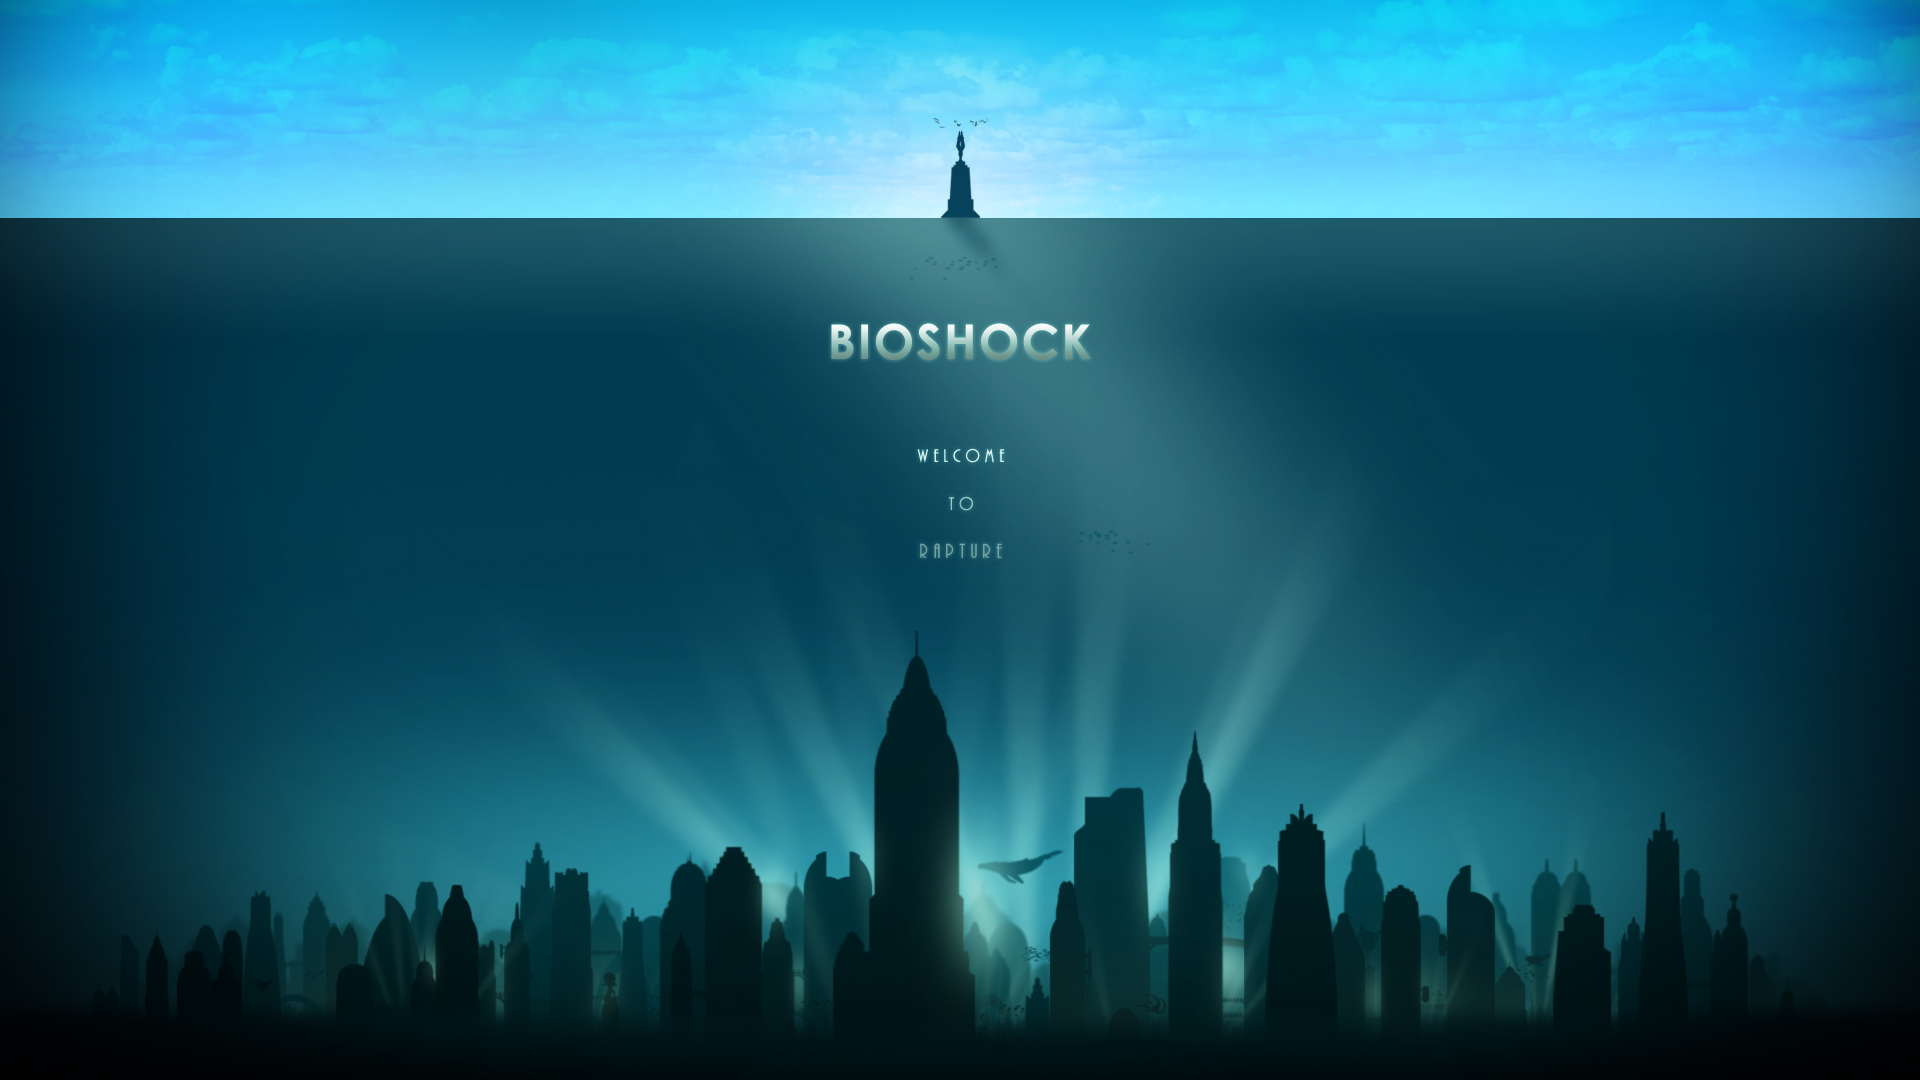 Bioshock Wallpaper By RockLou On Newgrounds